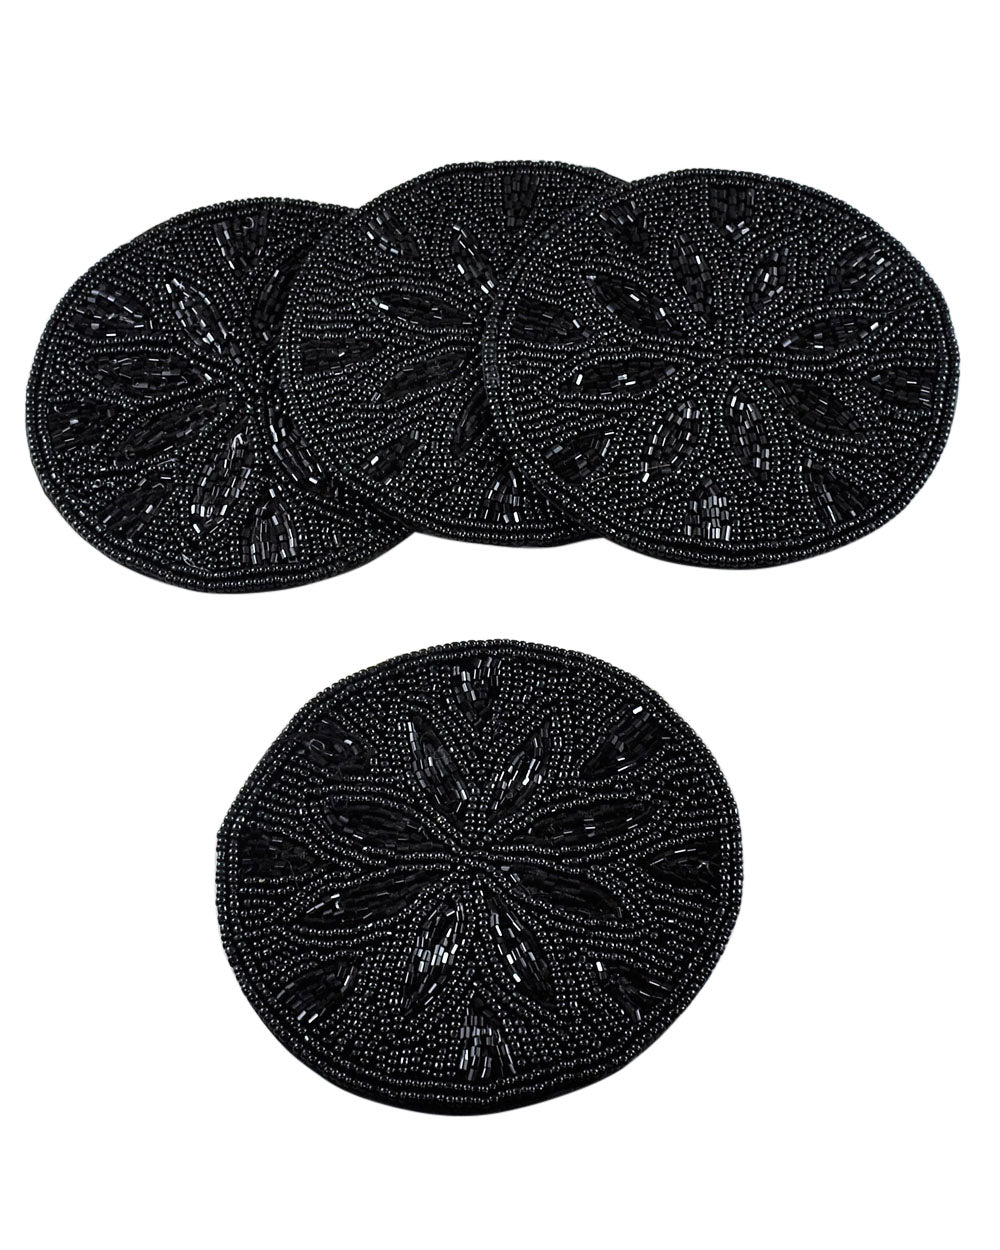 Black Beads Coaster Set of 4